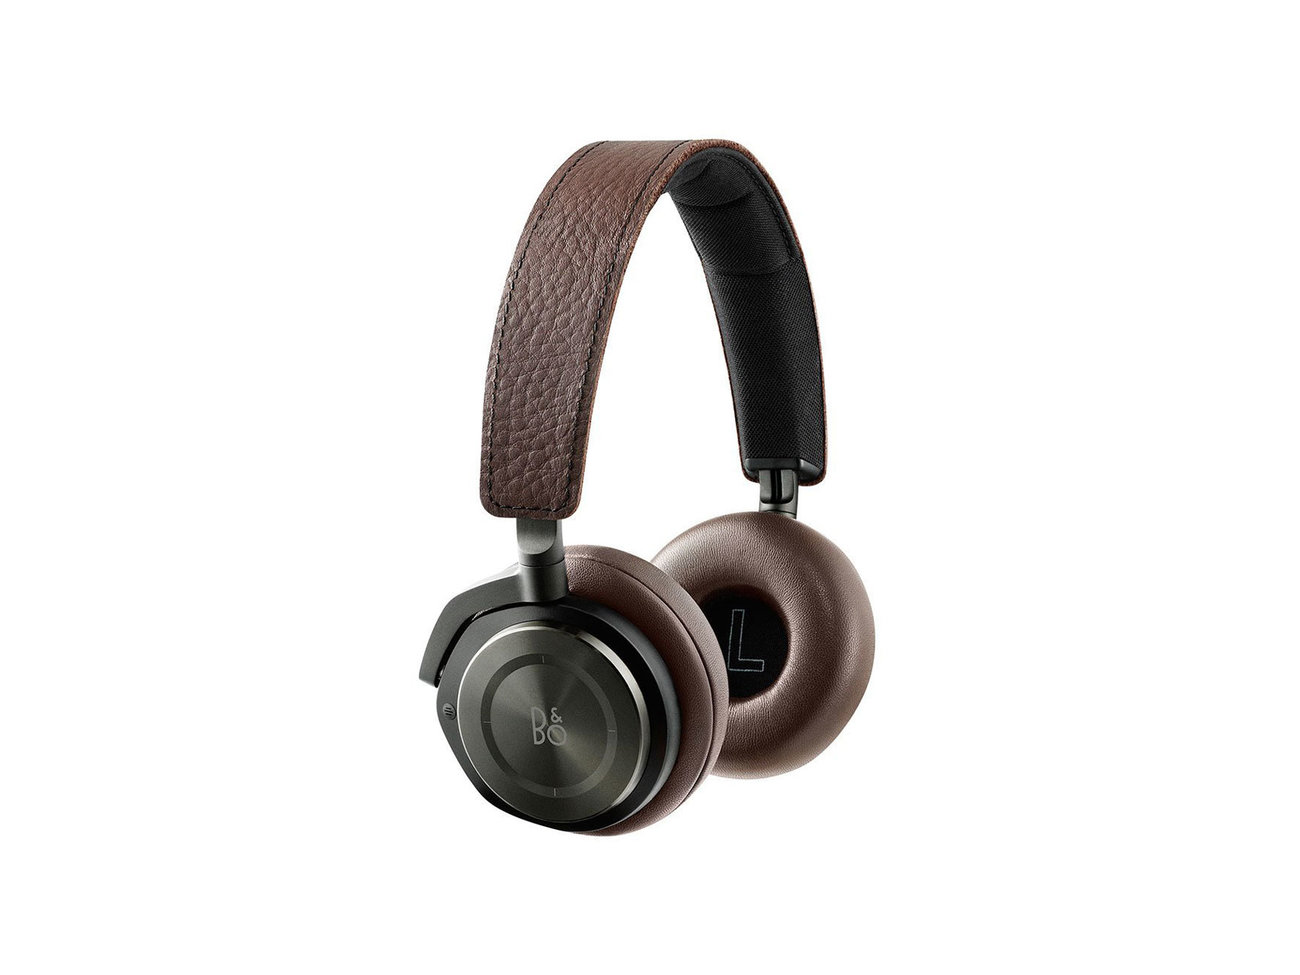 Tech-noise-cancelling-headphones-GG1115.jpg